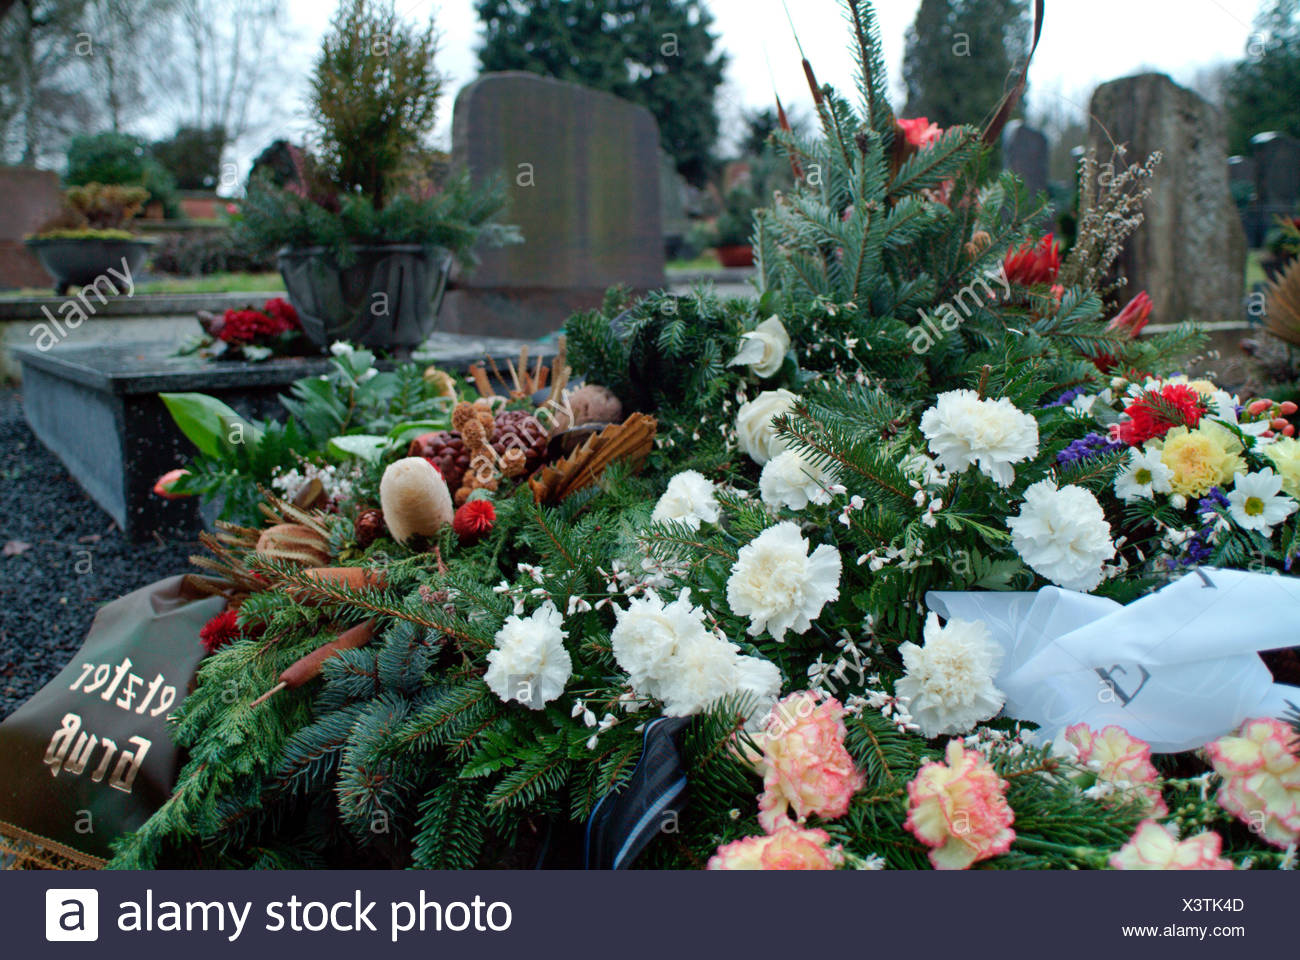 Flowers greetings stock photos flowers greetings stock images alamy fresh grave with flowers and farewell greetings stock image kristyandbryce Choice Image